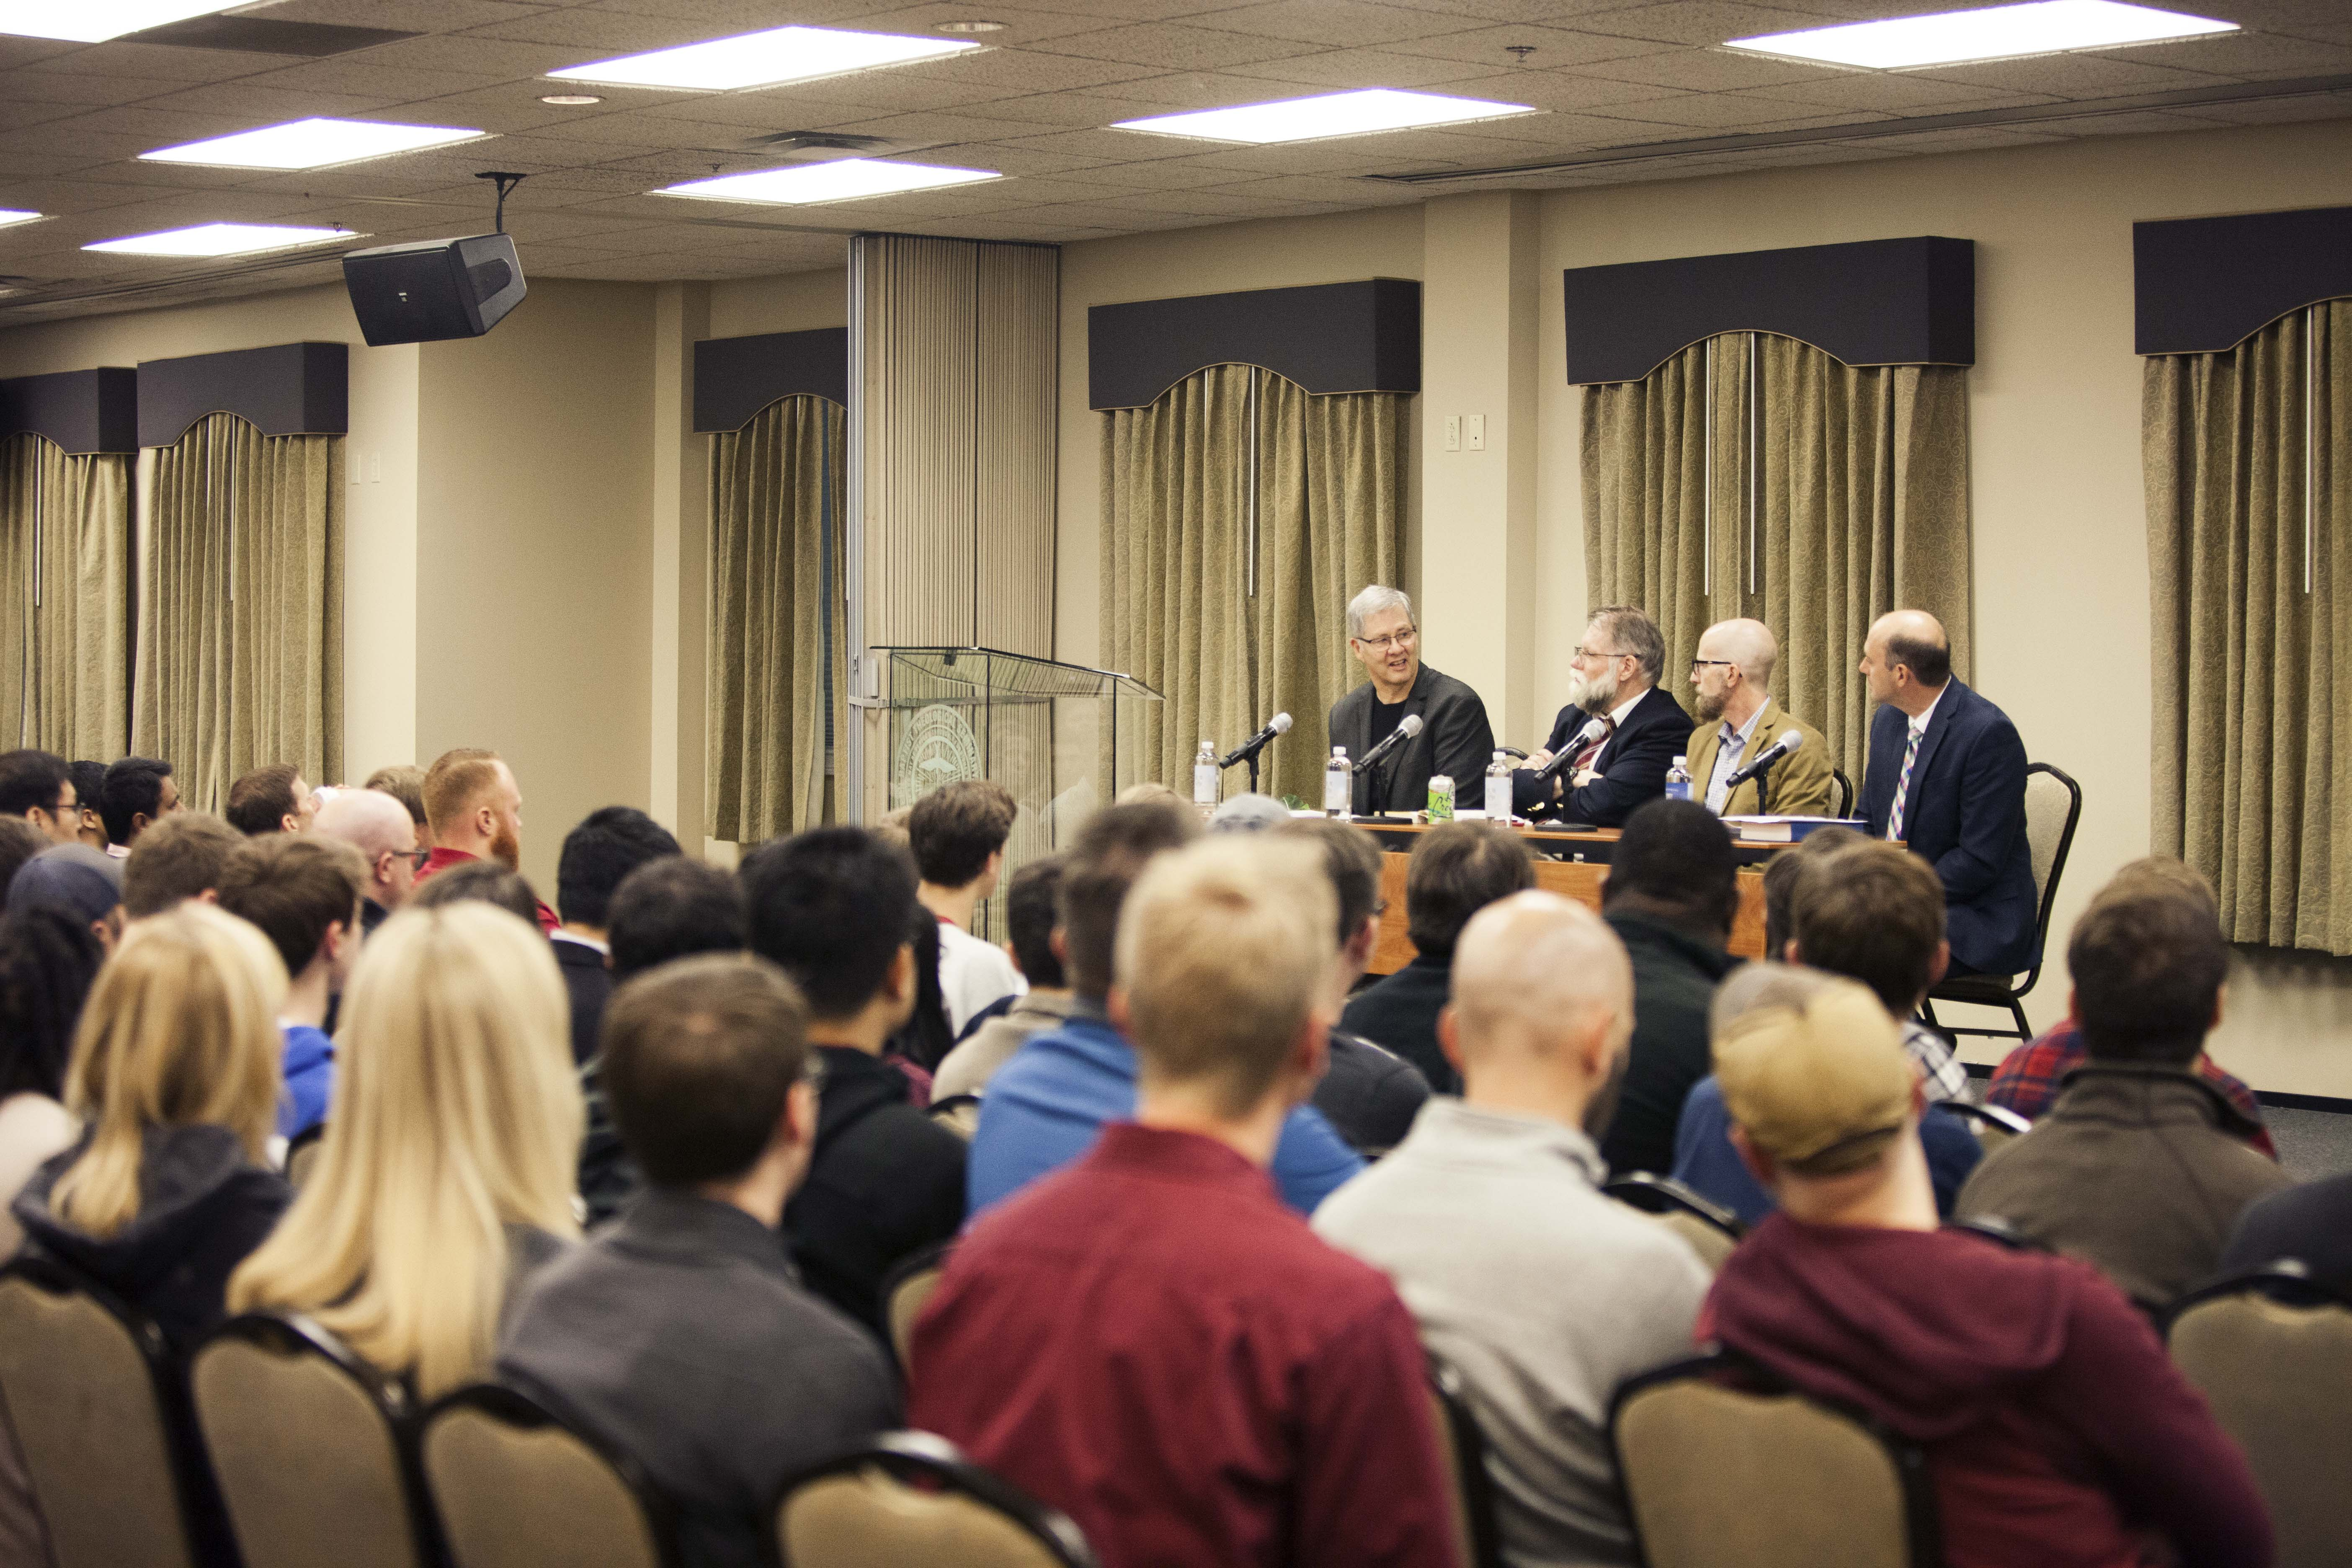 Southern Seminary hosts Greek scholar Bill Mounce for a panel